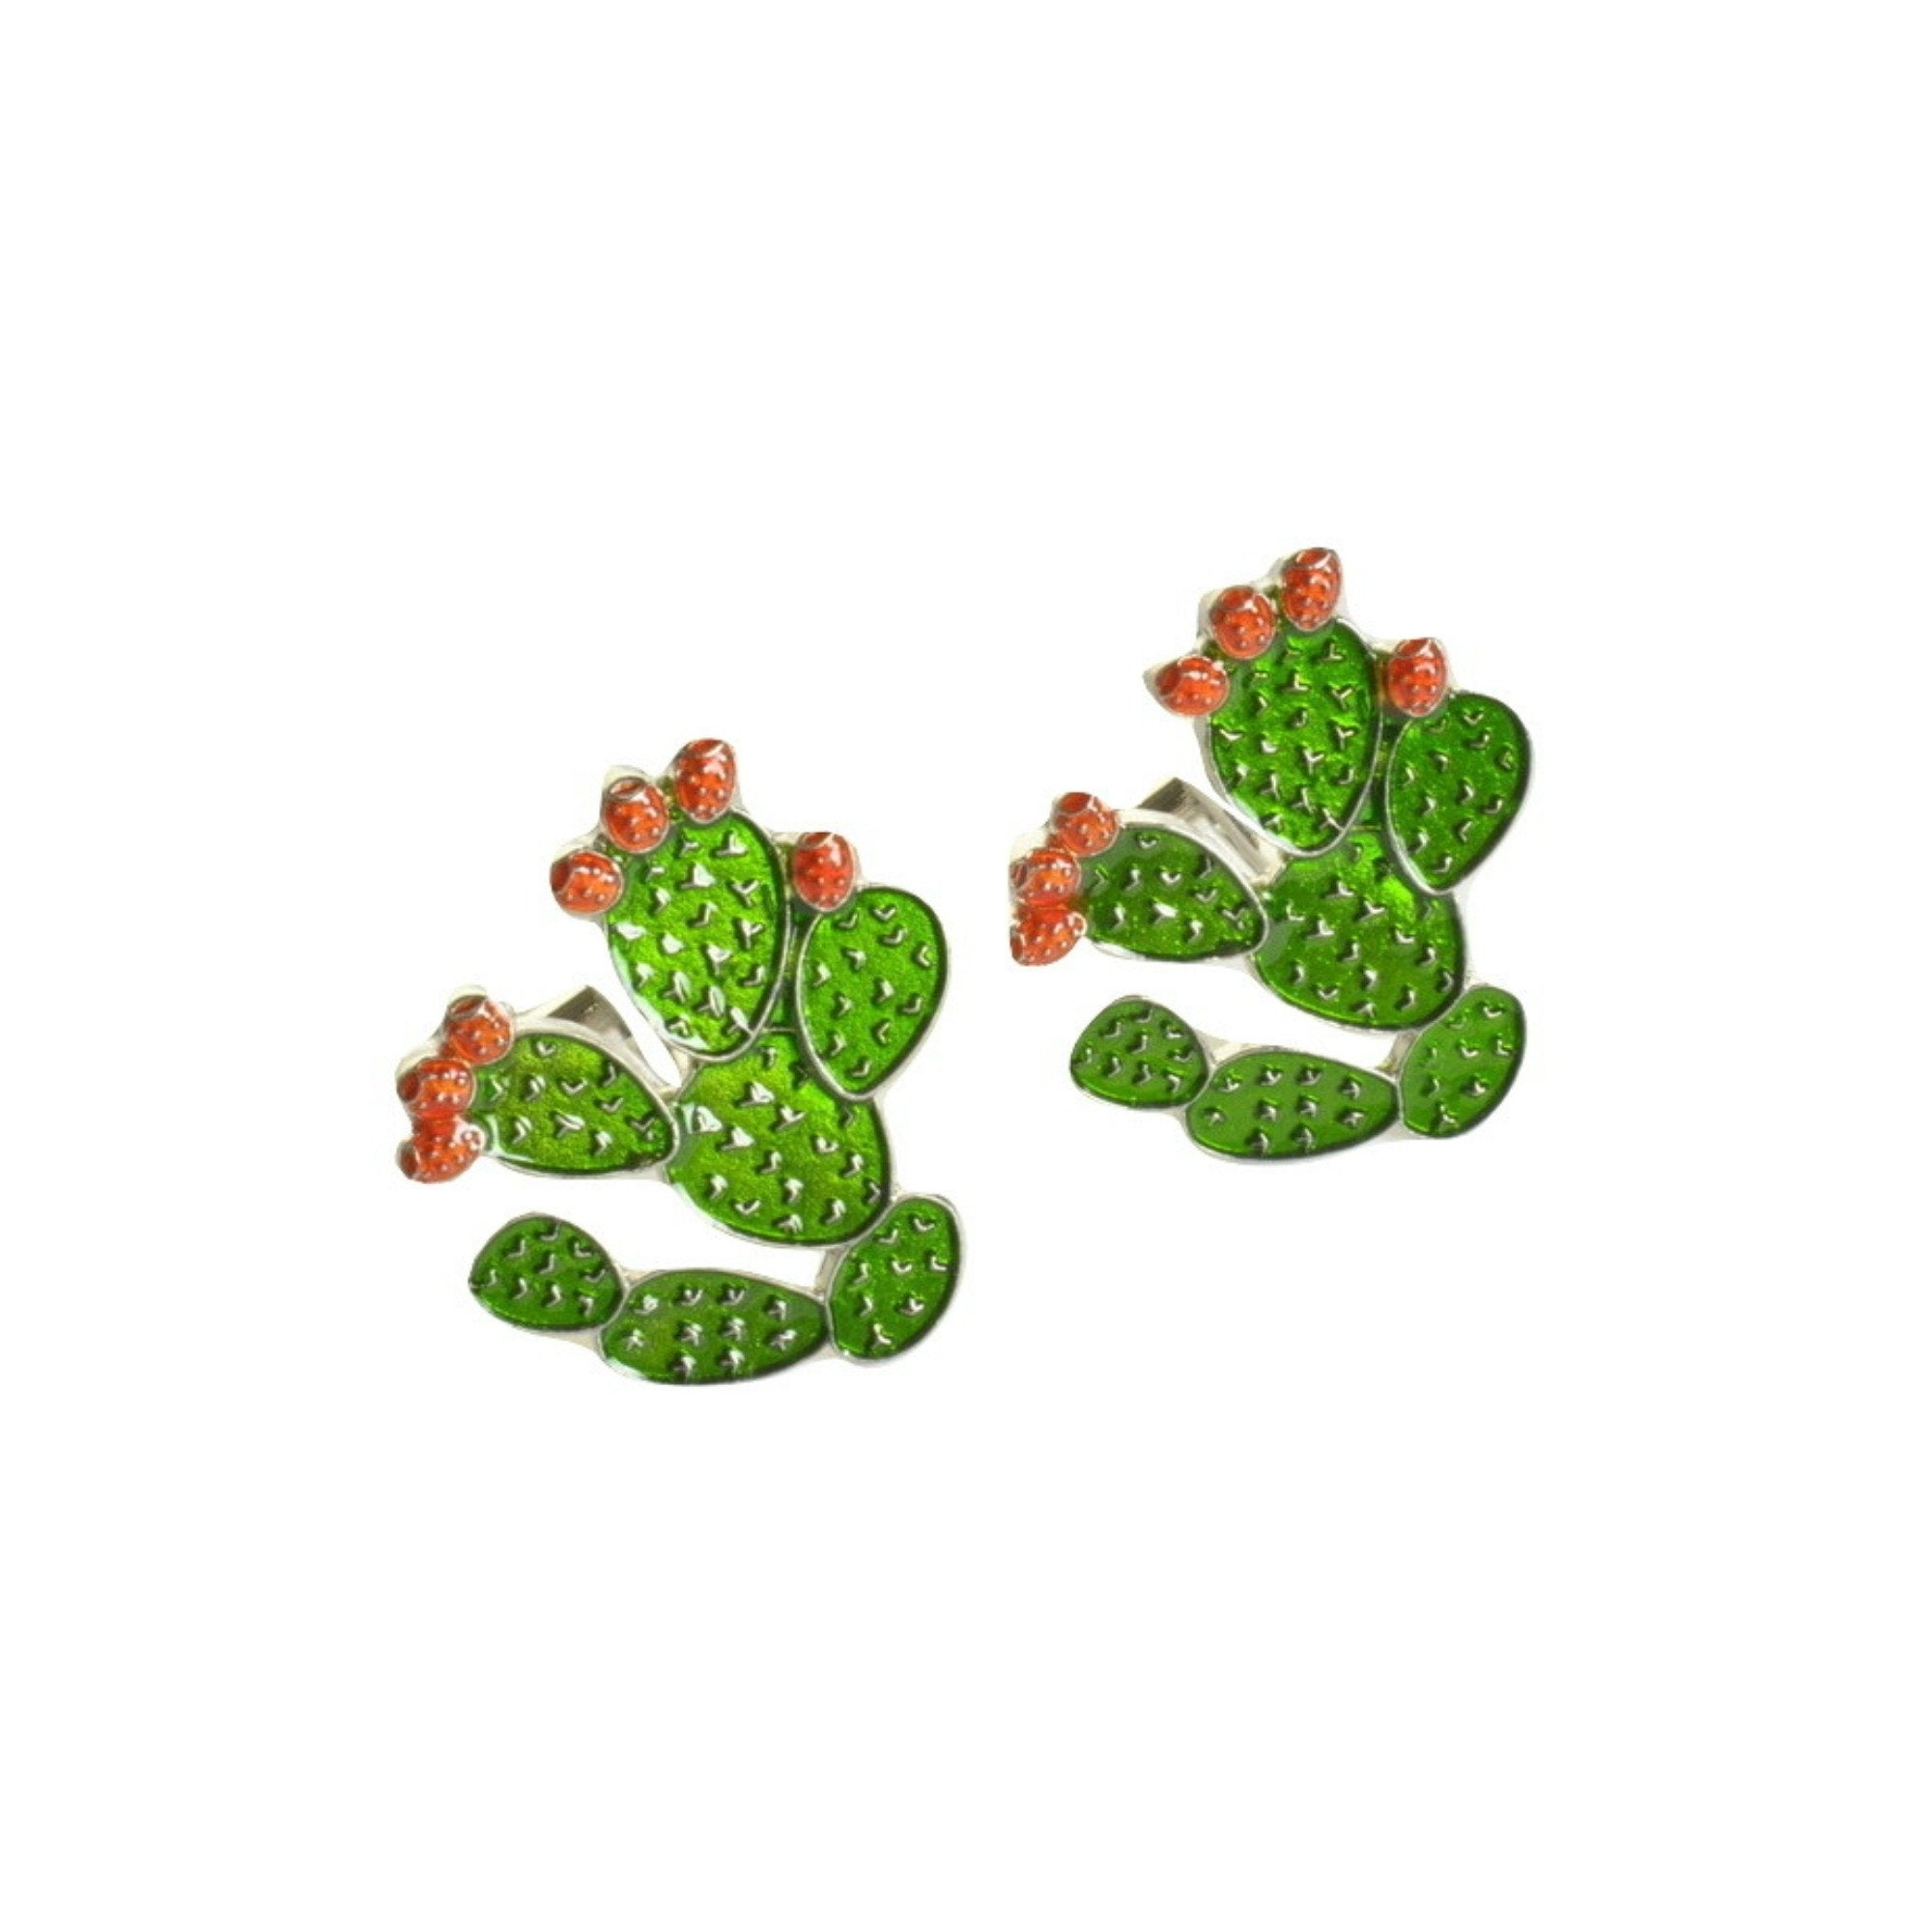 Cactus Enamel Cufflinks - Minimum Mouse